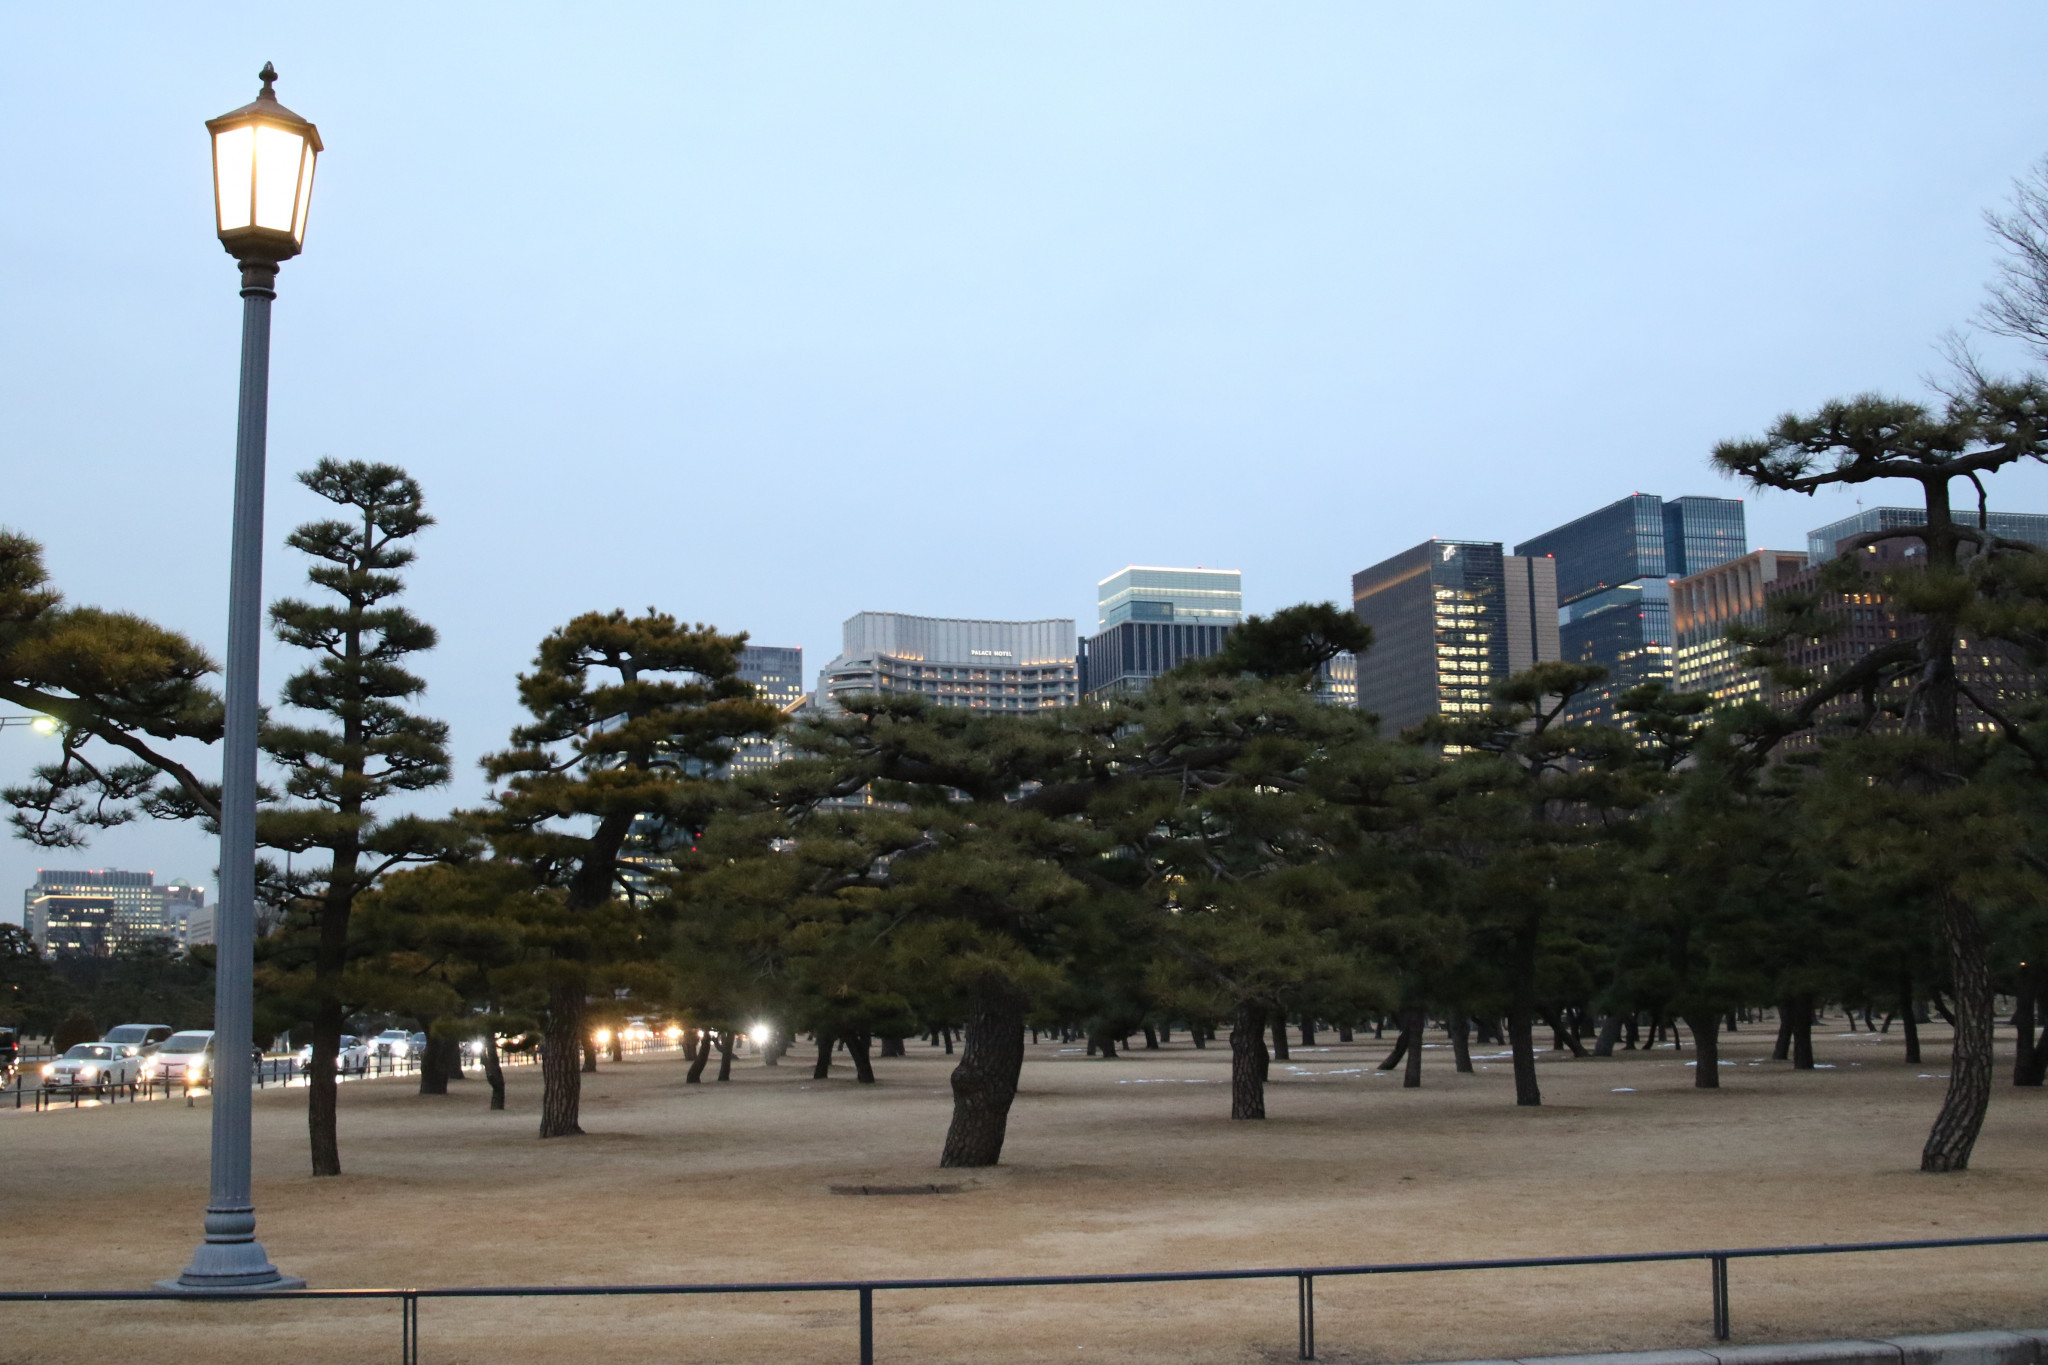 The Imperial Palace Garden will serve as the venue for race walking events ©Tokyo 2020